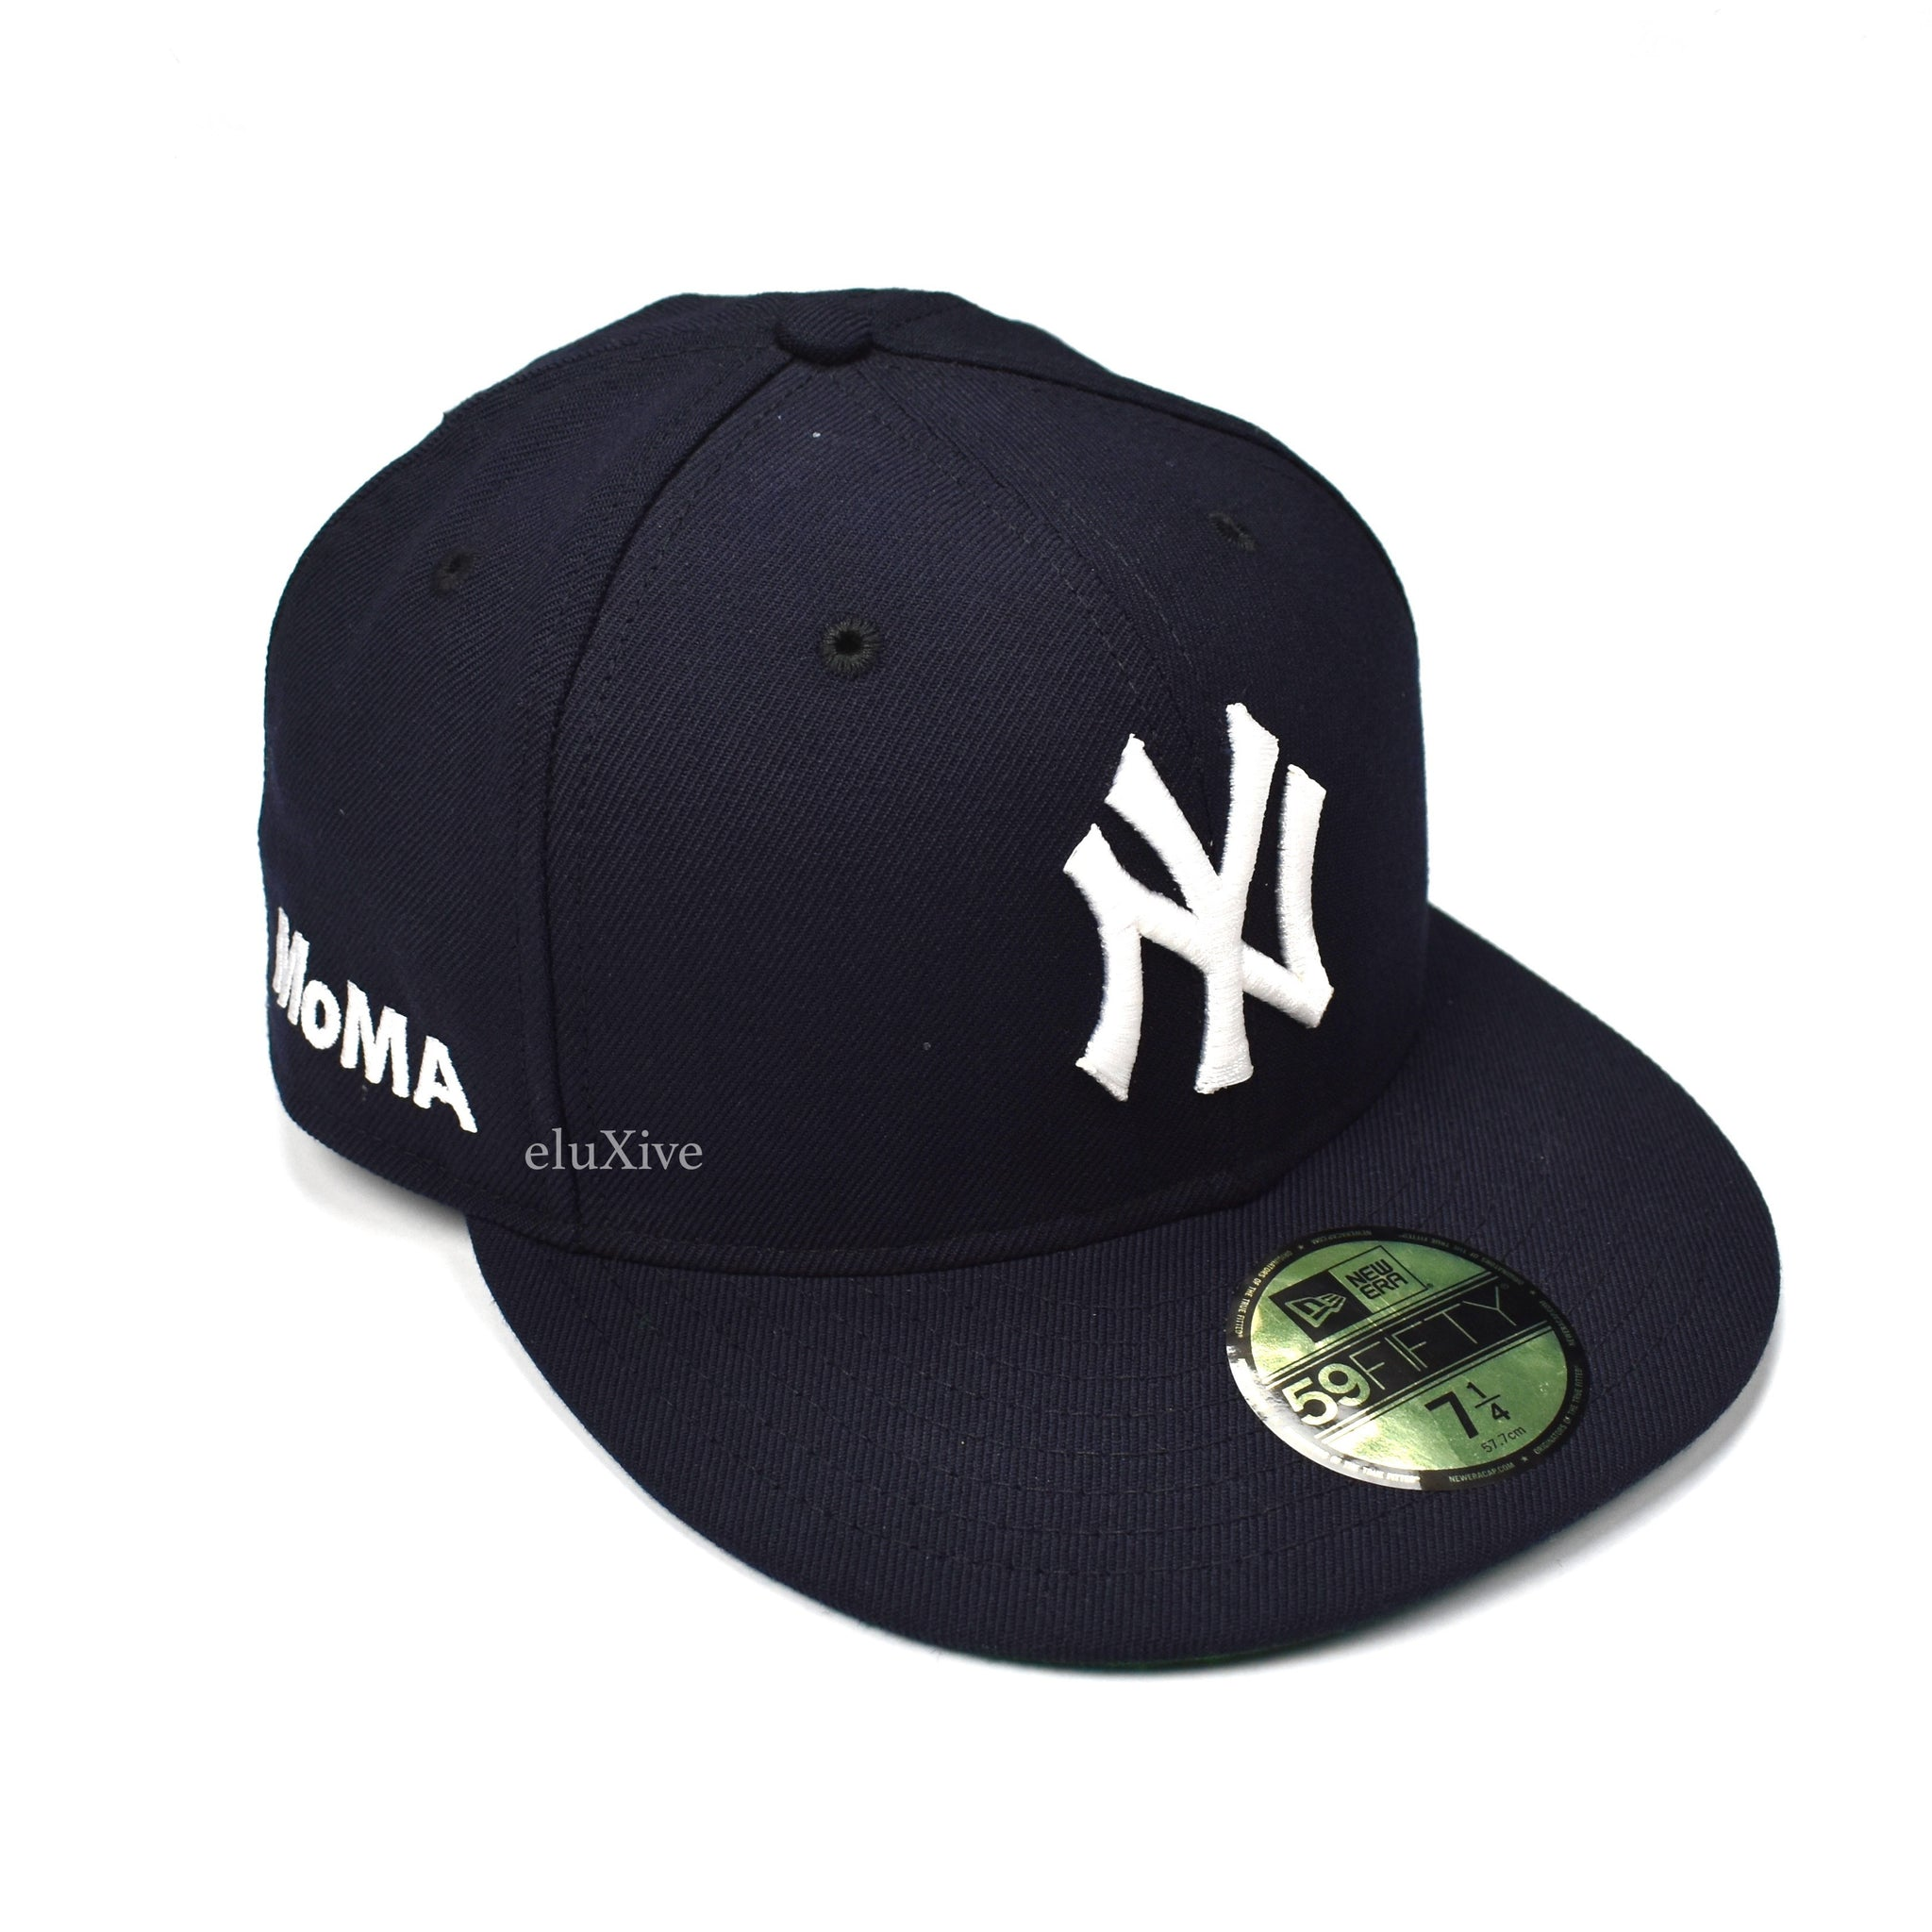 New Era - MoMA Edition New York Yankees 59 Fifty Fitted Cap – eluXive 8b5374415bc